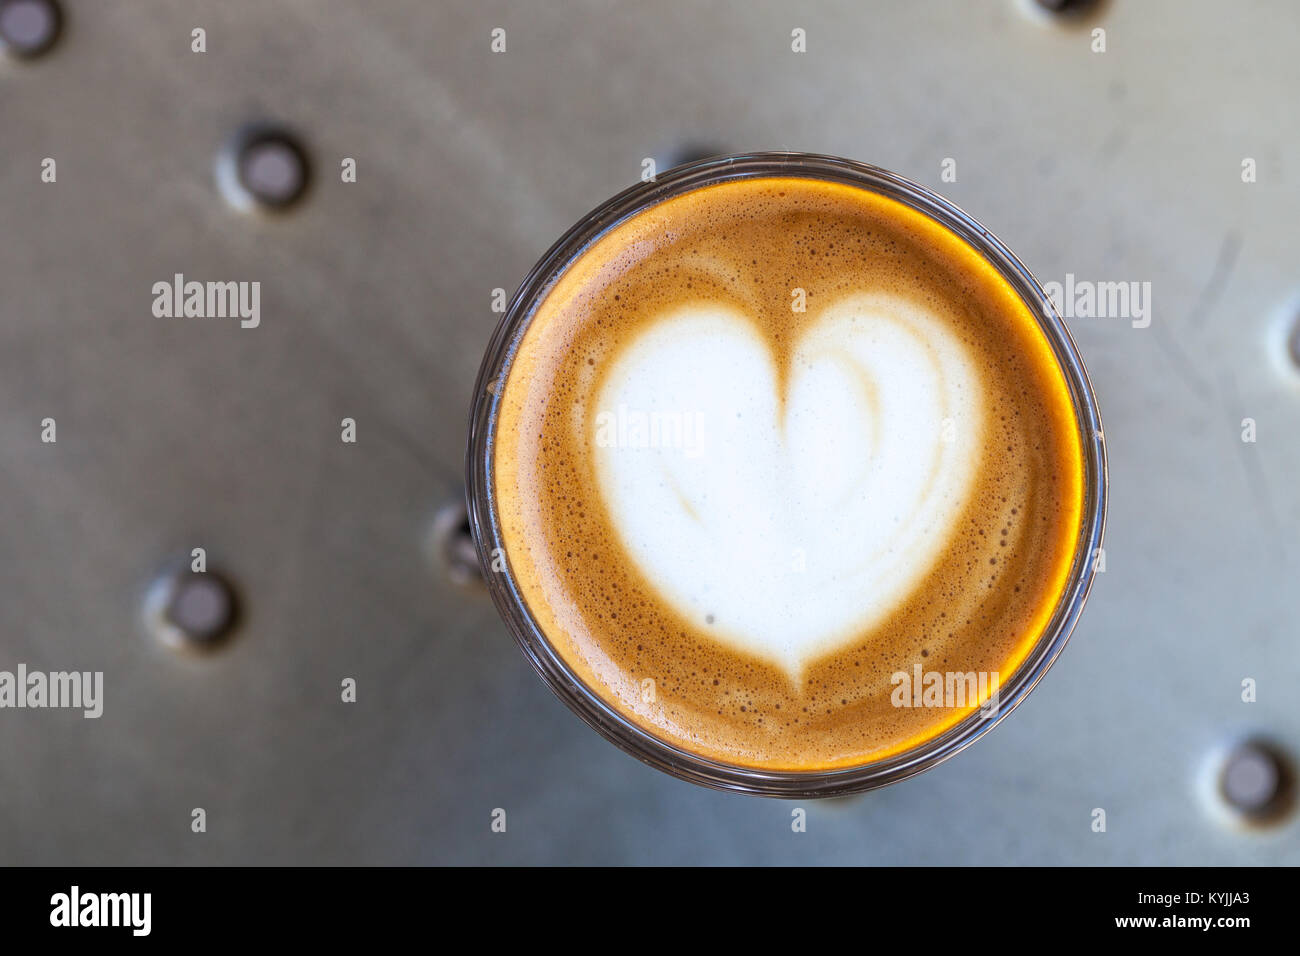 Top view of cortado coffee in a glass with the foam in shape of heart - Stock Image